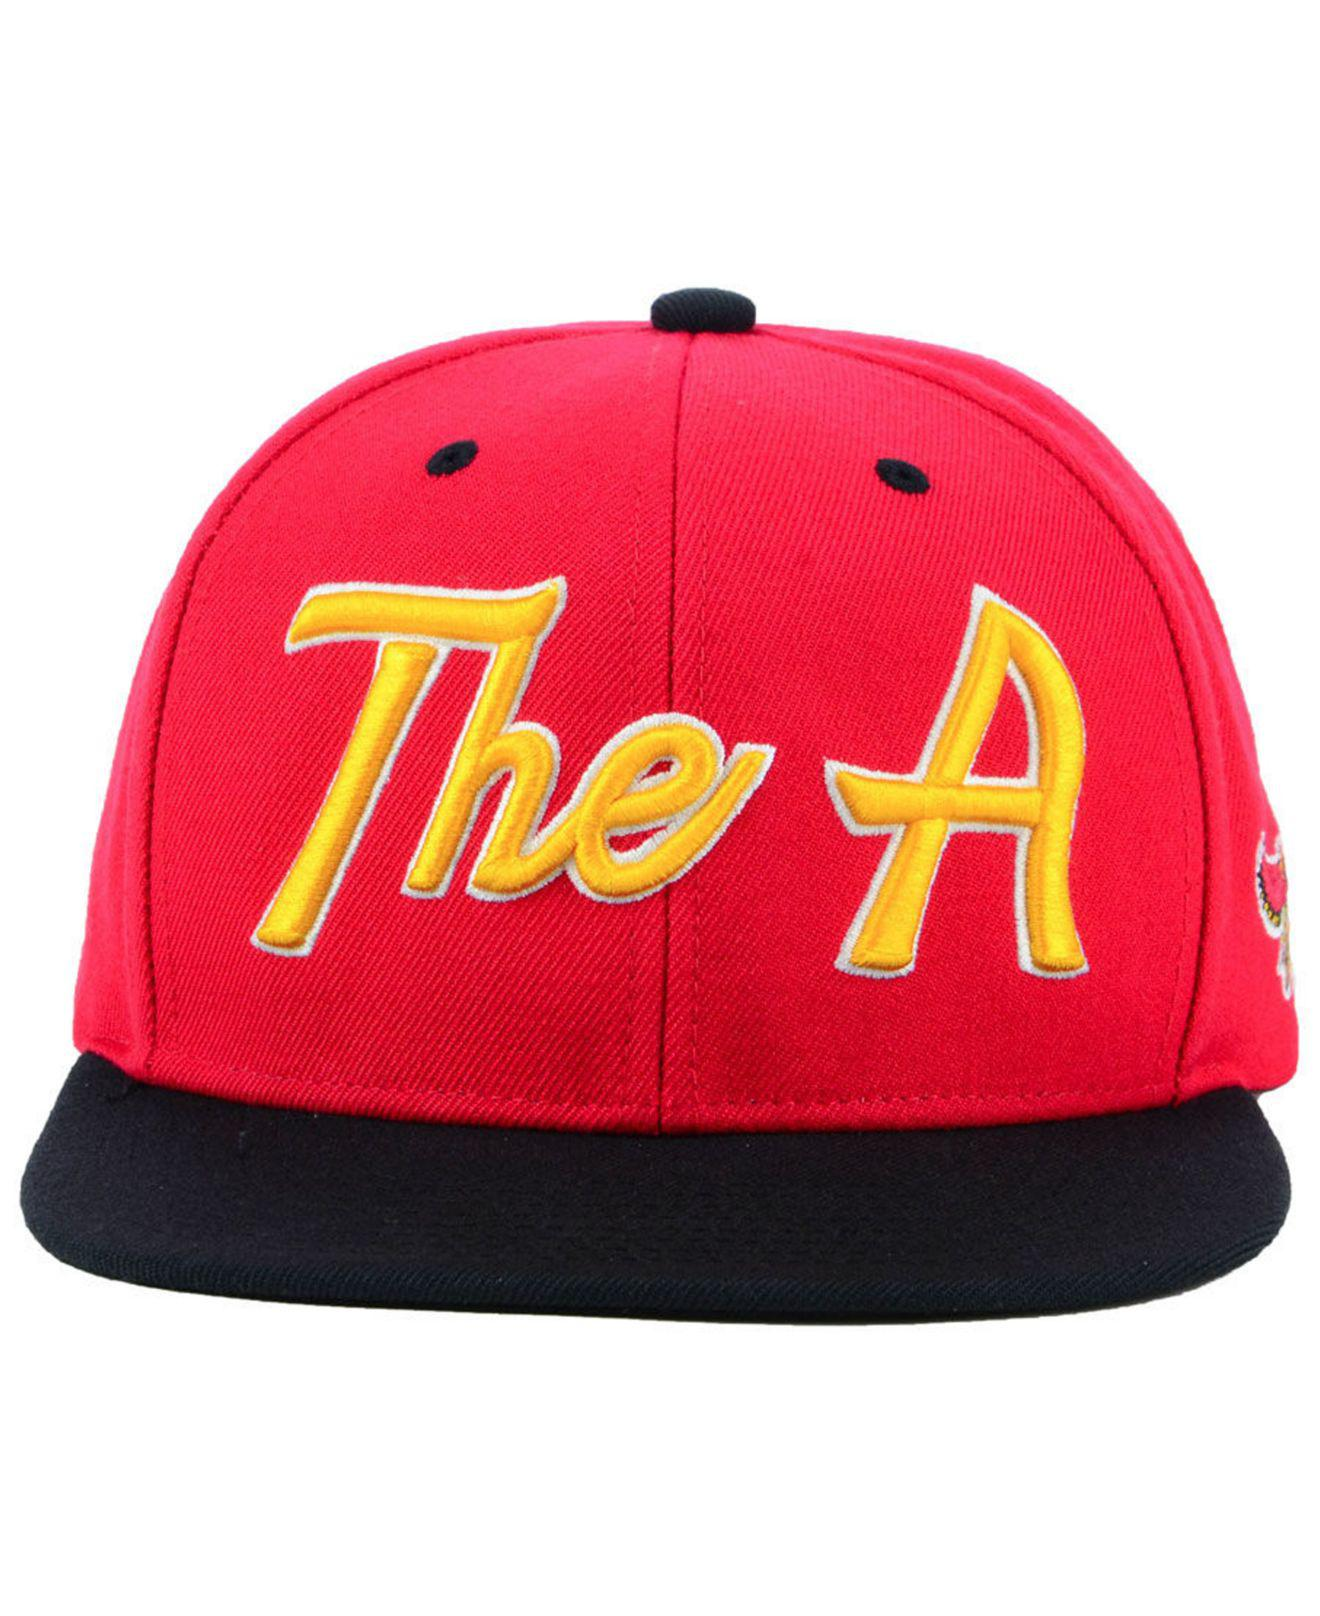 info for 6a5c6 29304 ... spain lyst mitchell ness atlanta hawks town snapback cap in red for men  6ea70 94fdd